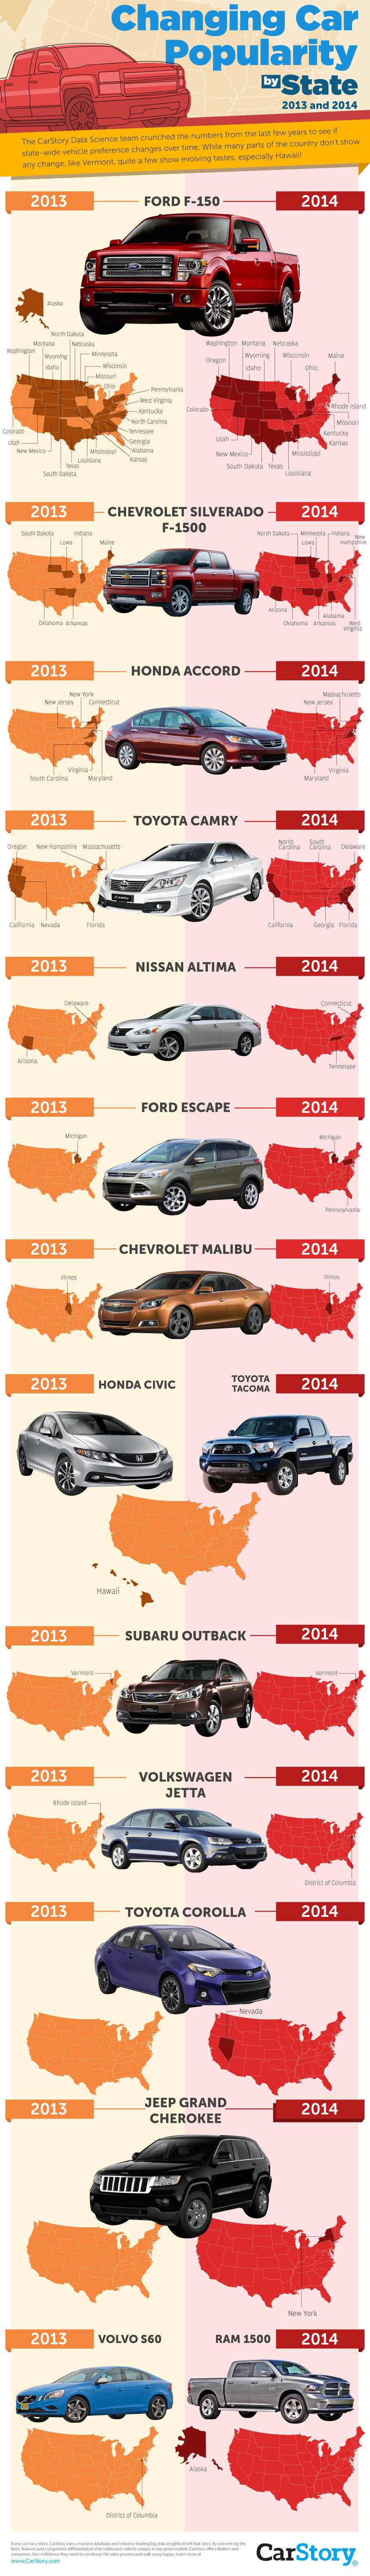 Most Popular Car and Truck Models by State Carstory Infographic